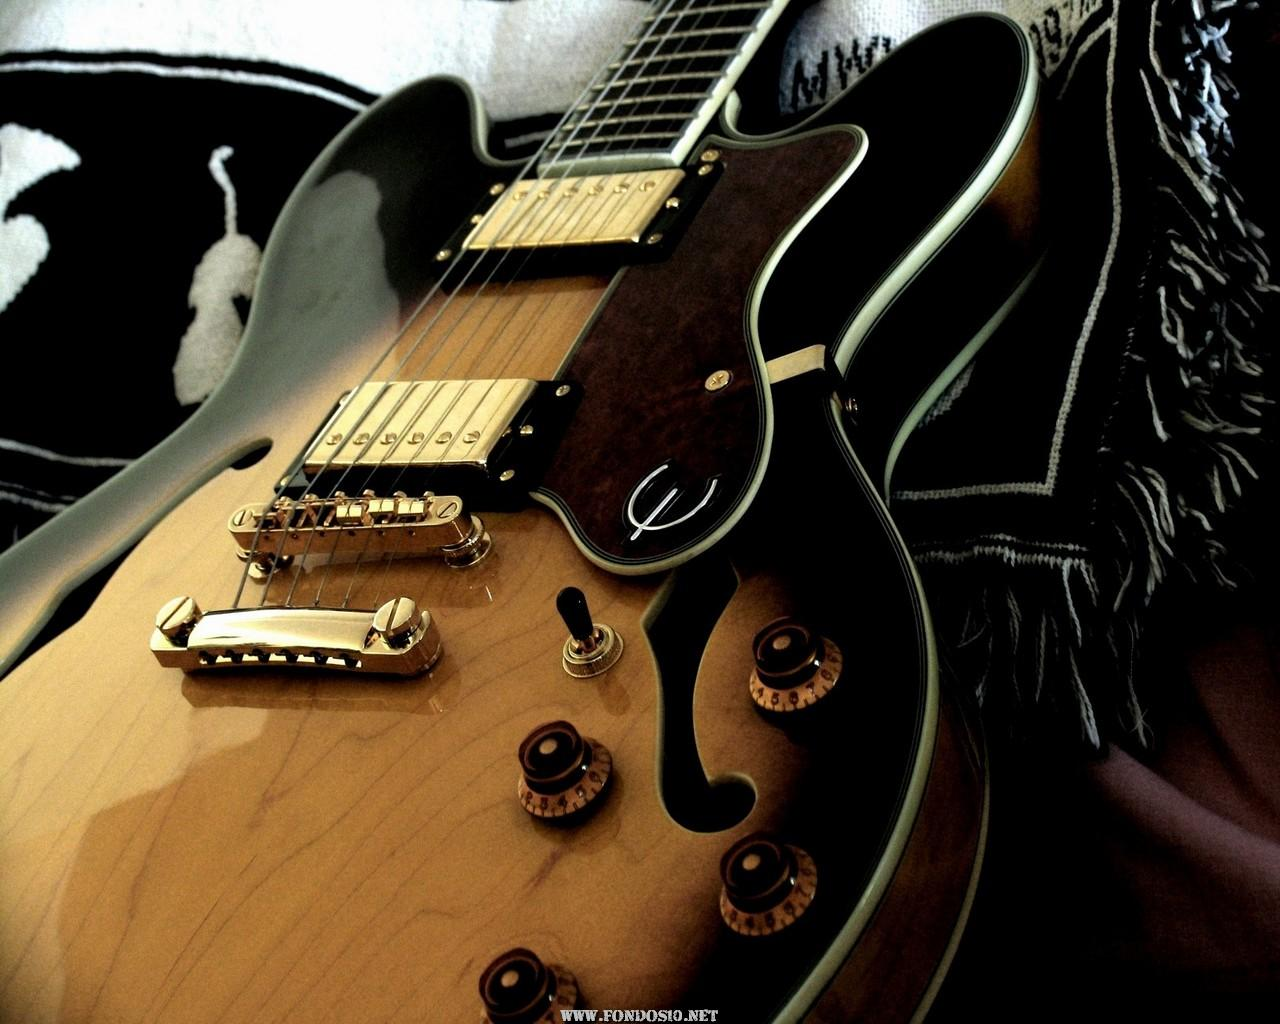 Guitarras y pianos HD